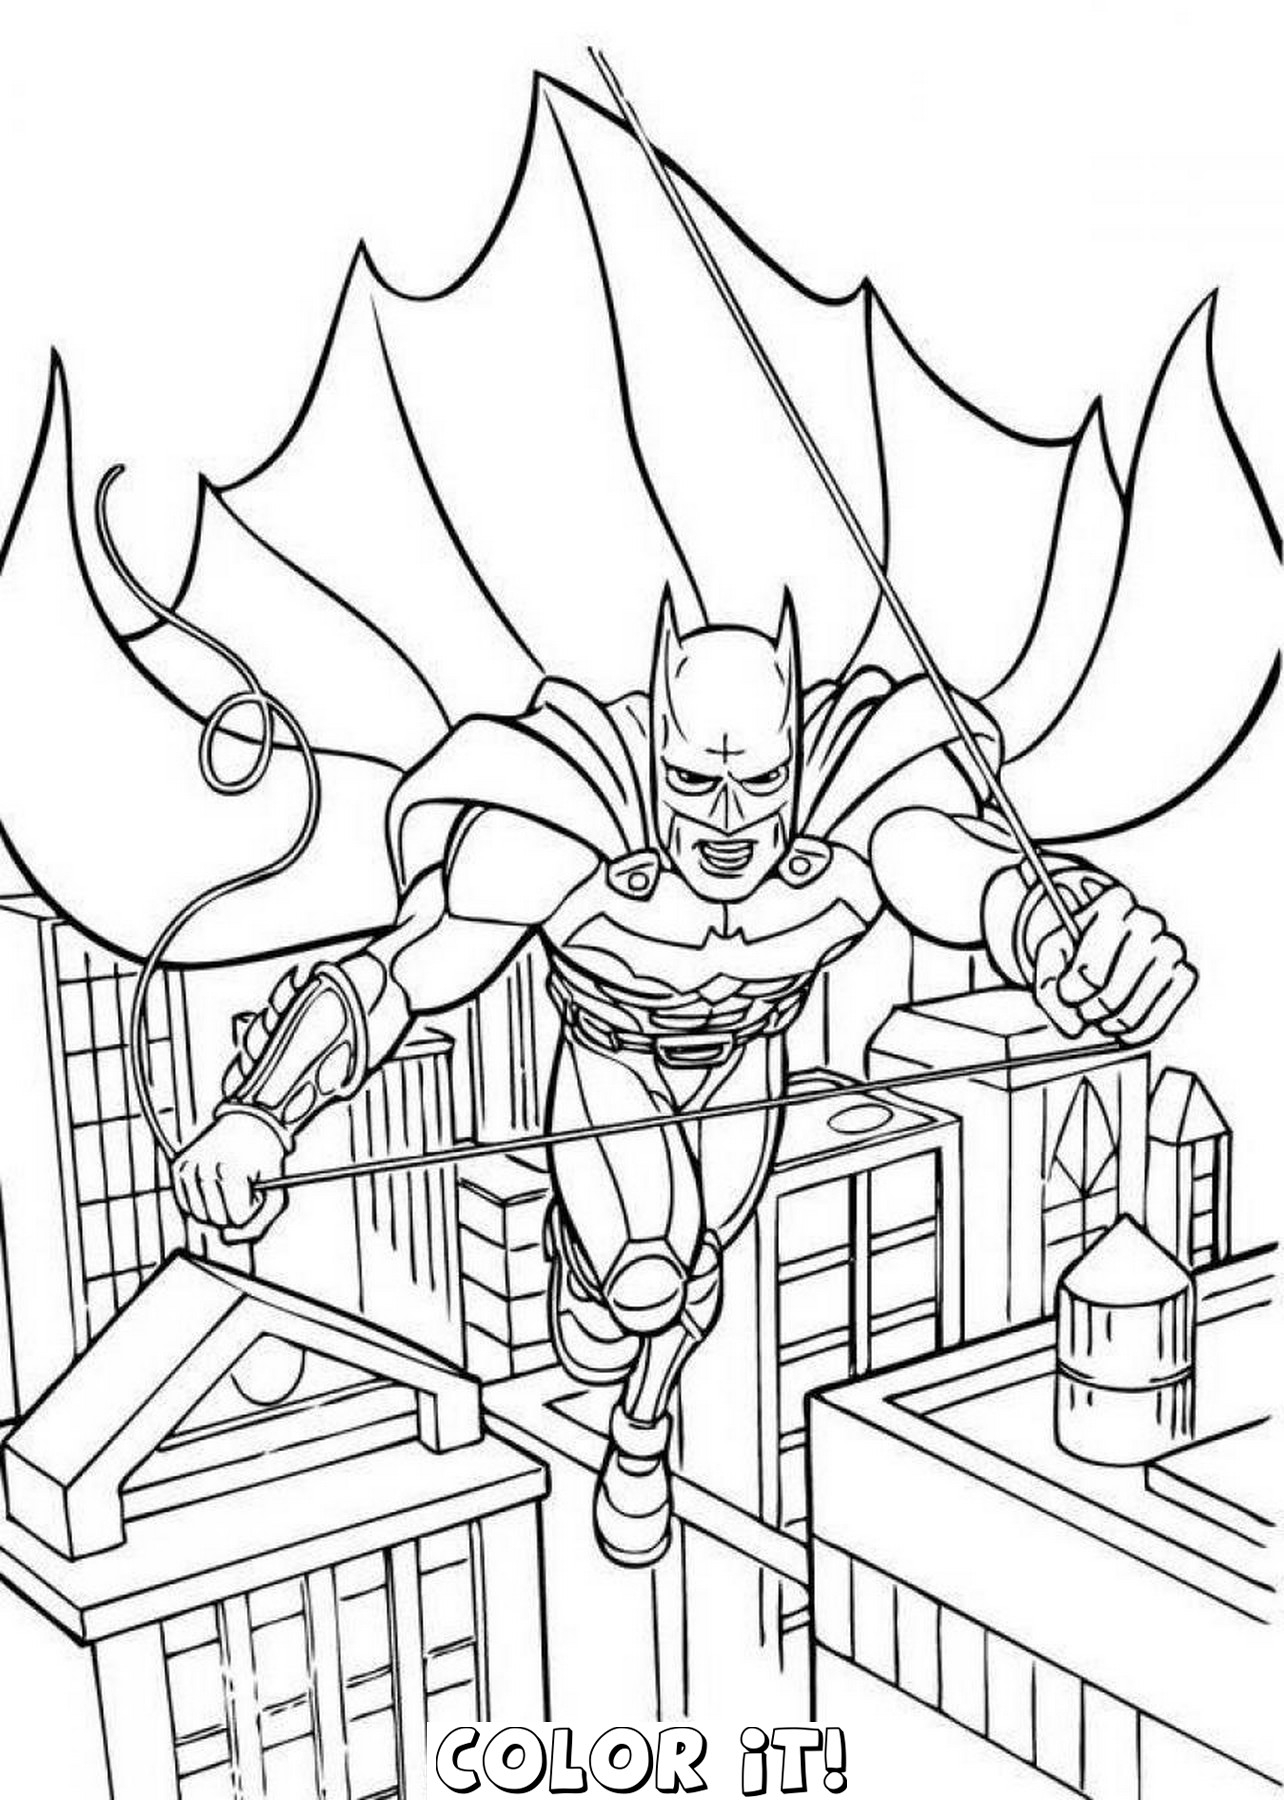 Free Printable Lego Batman Coloring Pages Many Interesting Cliparts To Print Of Color Lenito